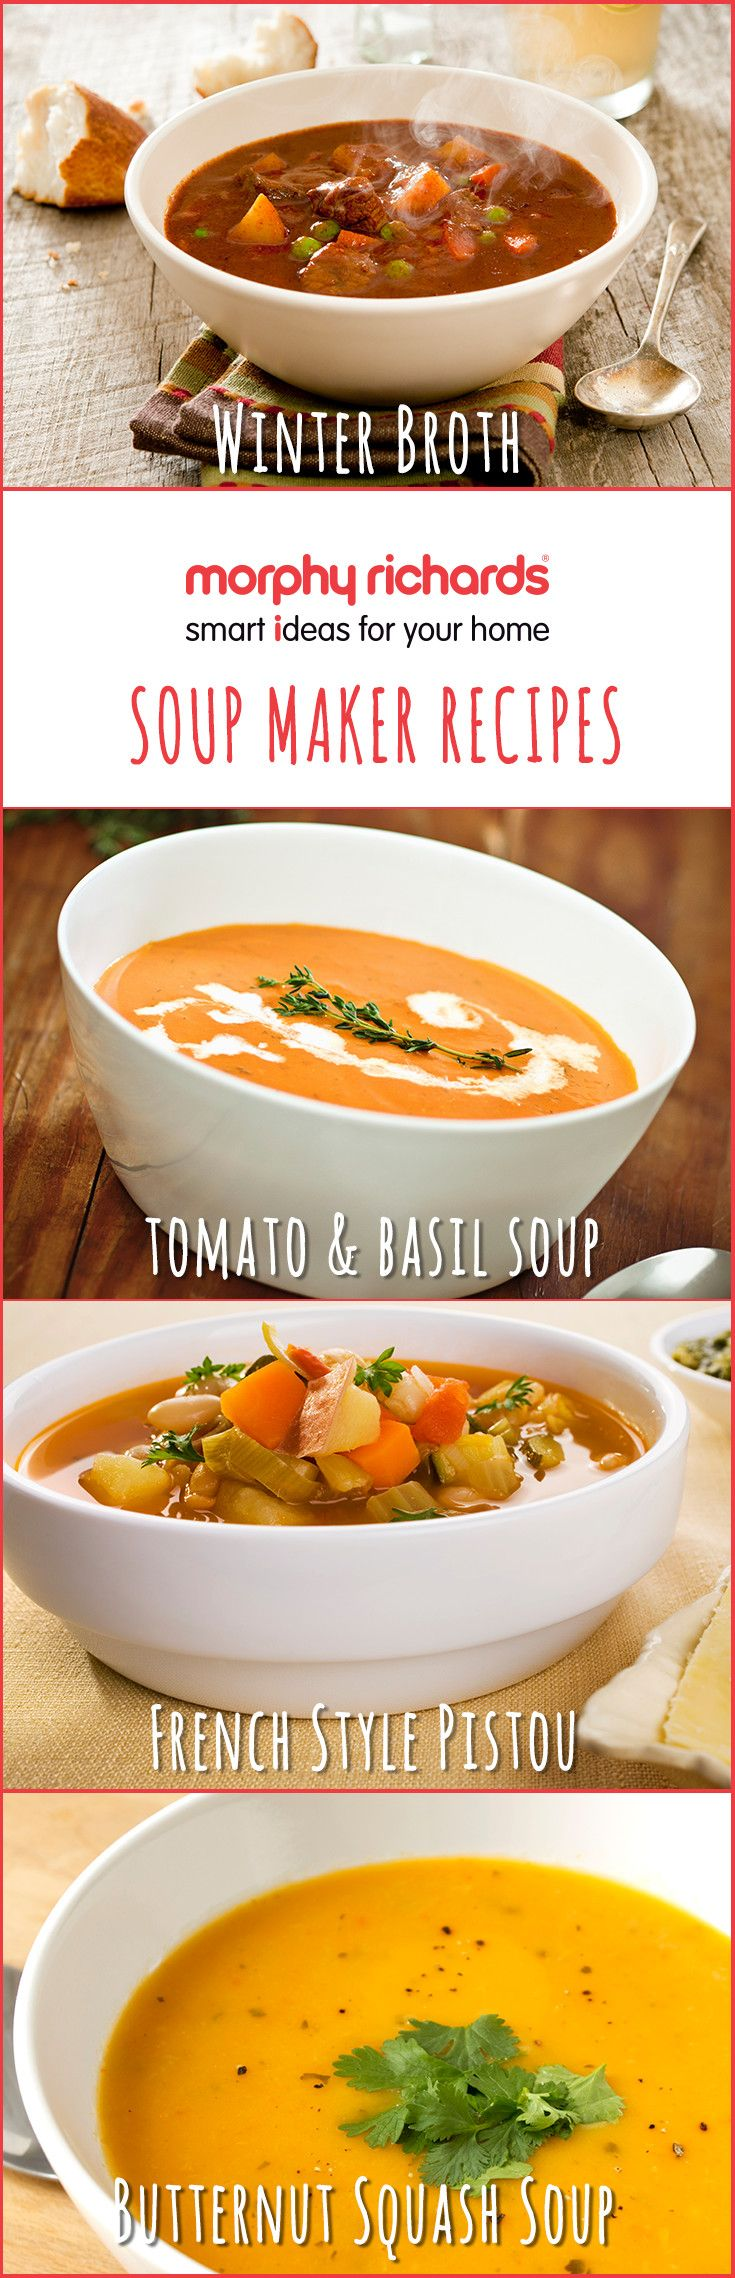 Get soup-spiration for your next batch using the Morphy Richards Soup Maker with these tasty winter soup recipes. Download the Cook & Create App to get all the instructions.